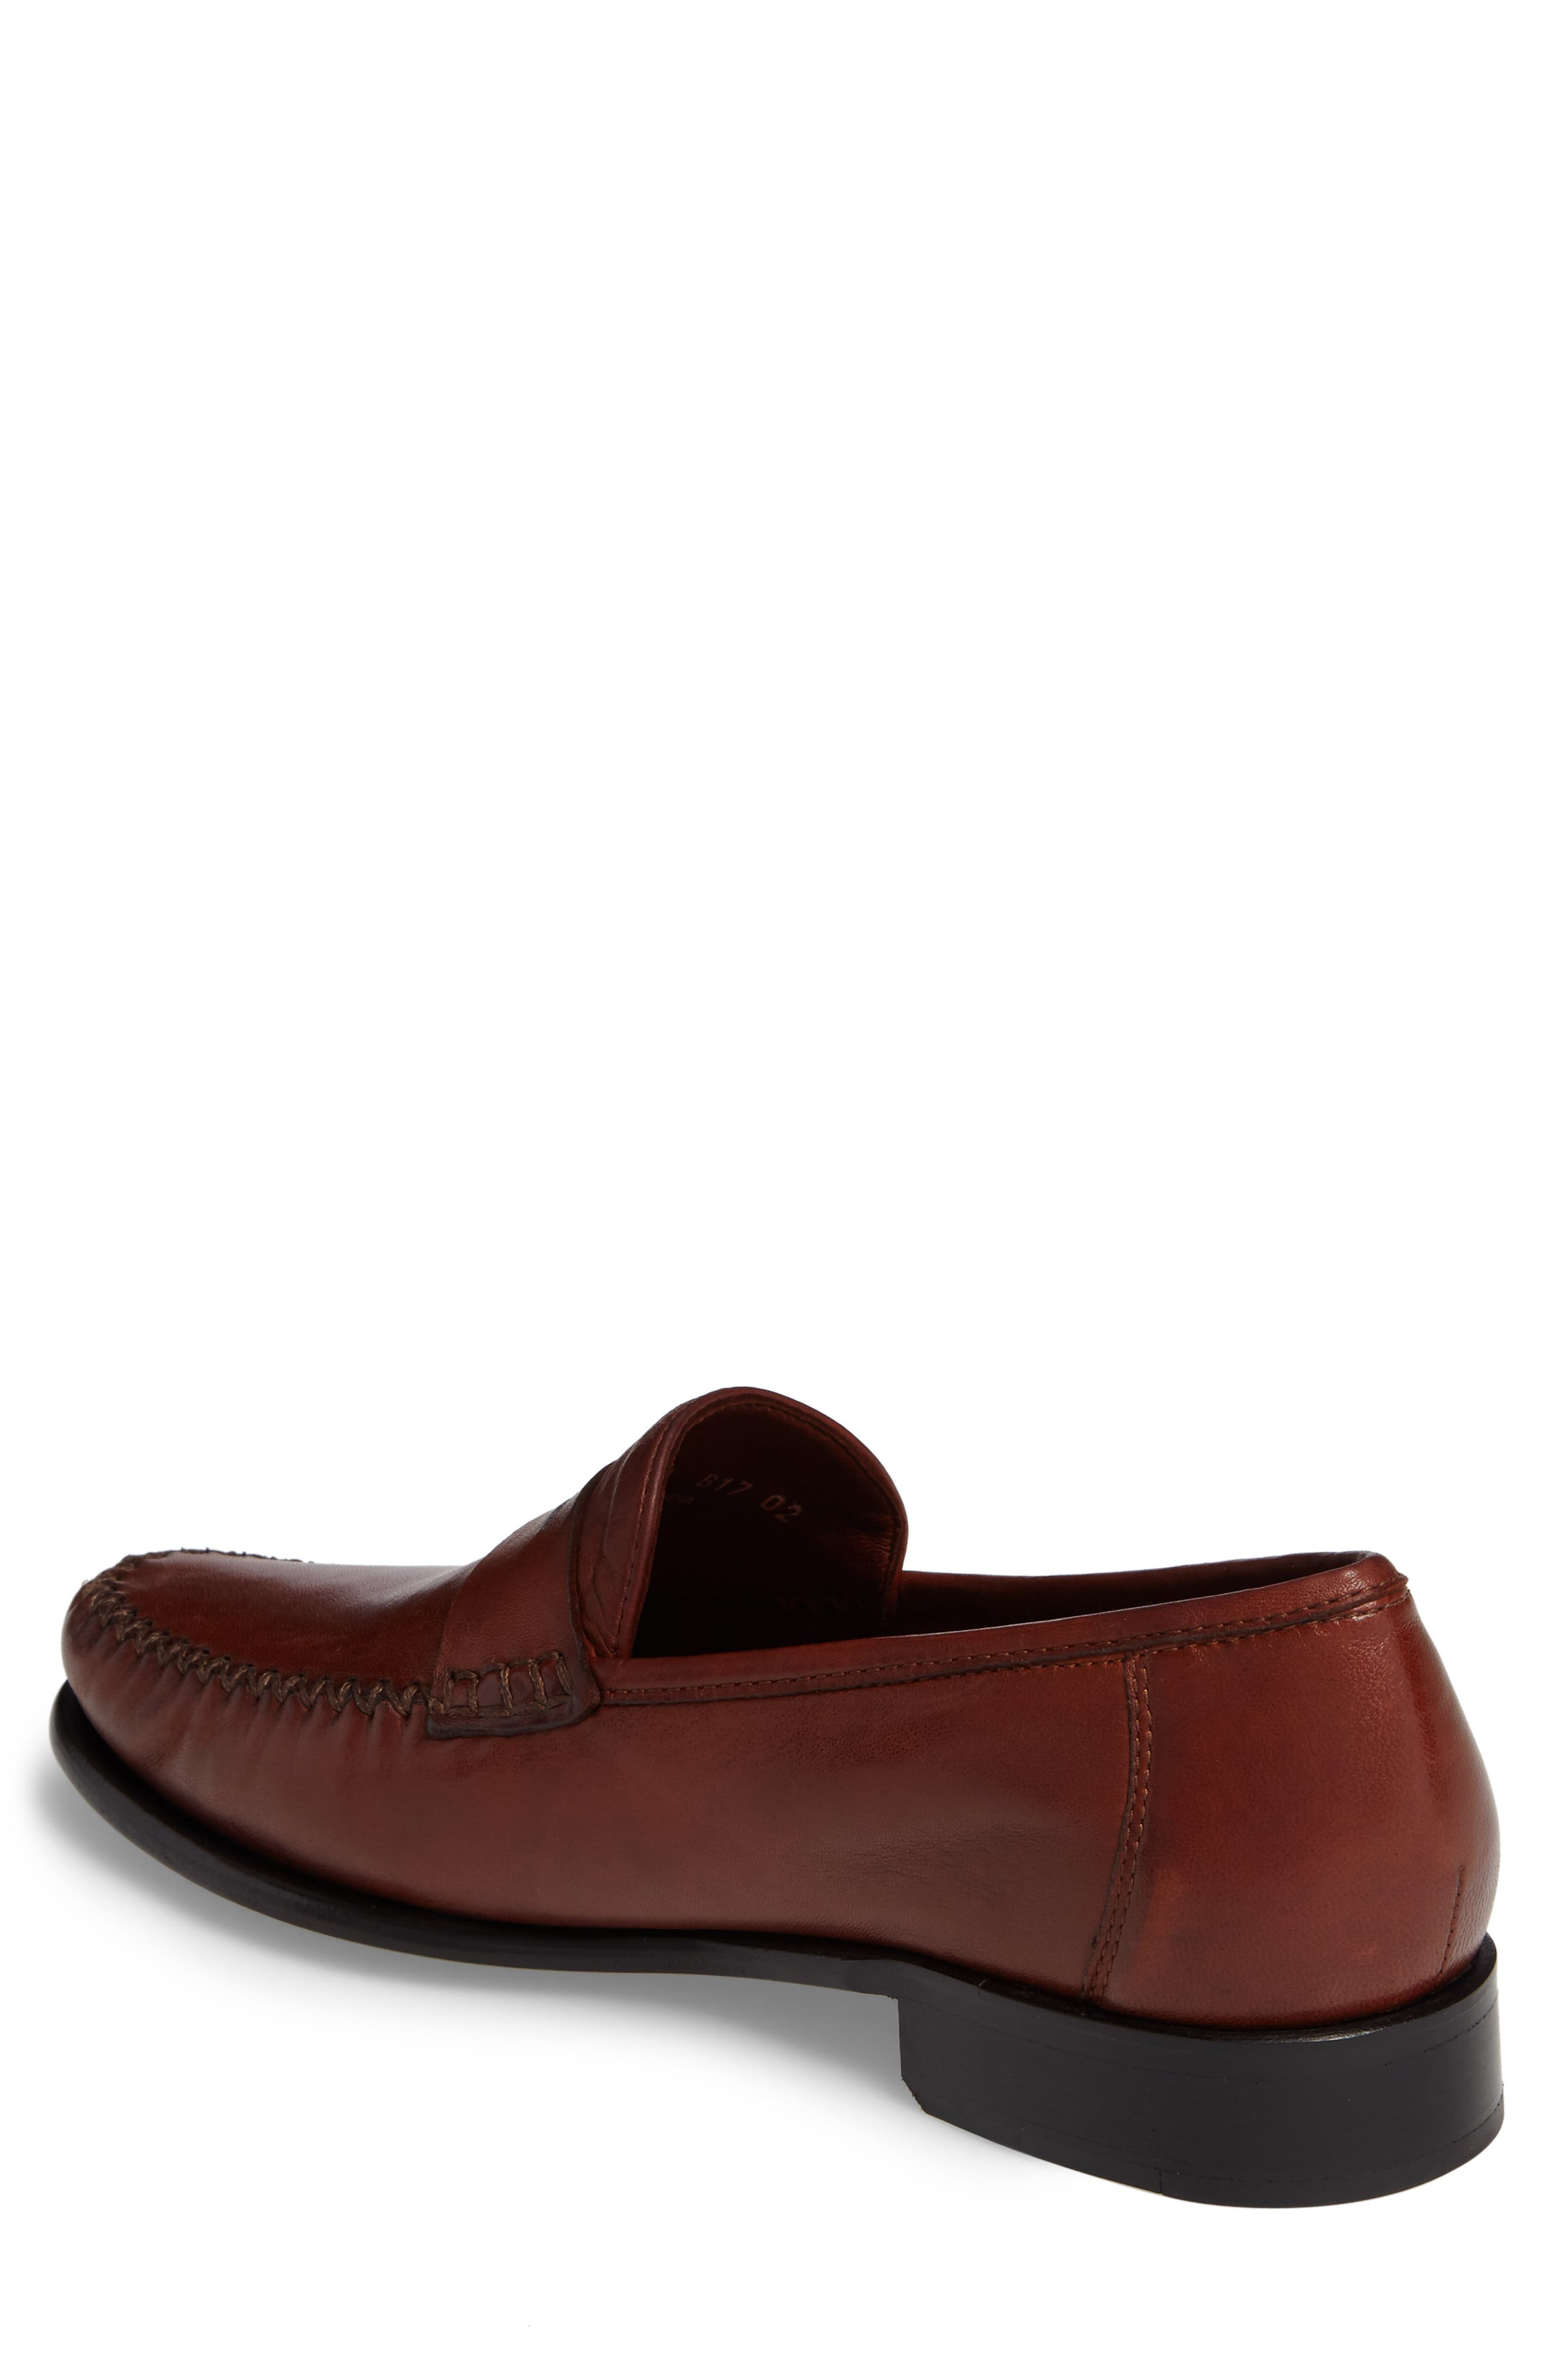 ROBERT ZUR, Penny Loafer, Alternate thumbnail 2, color, DARK LUGGAGE LEATHER